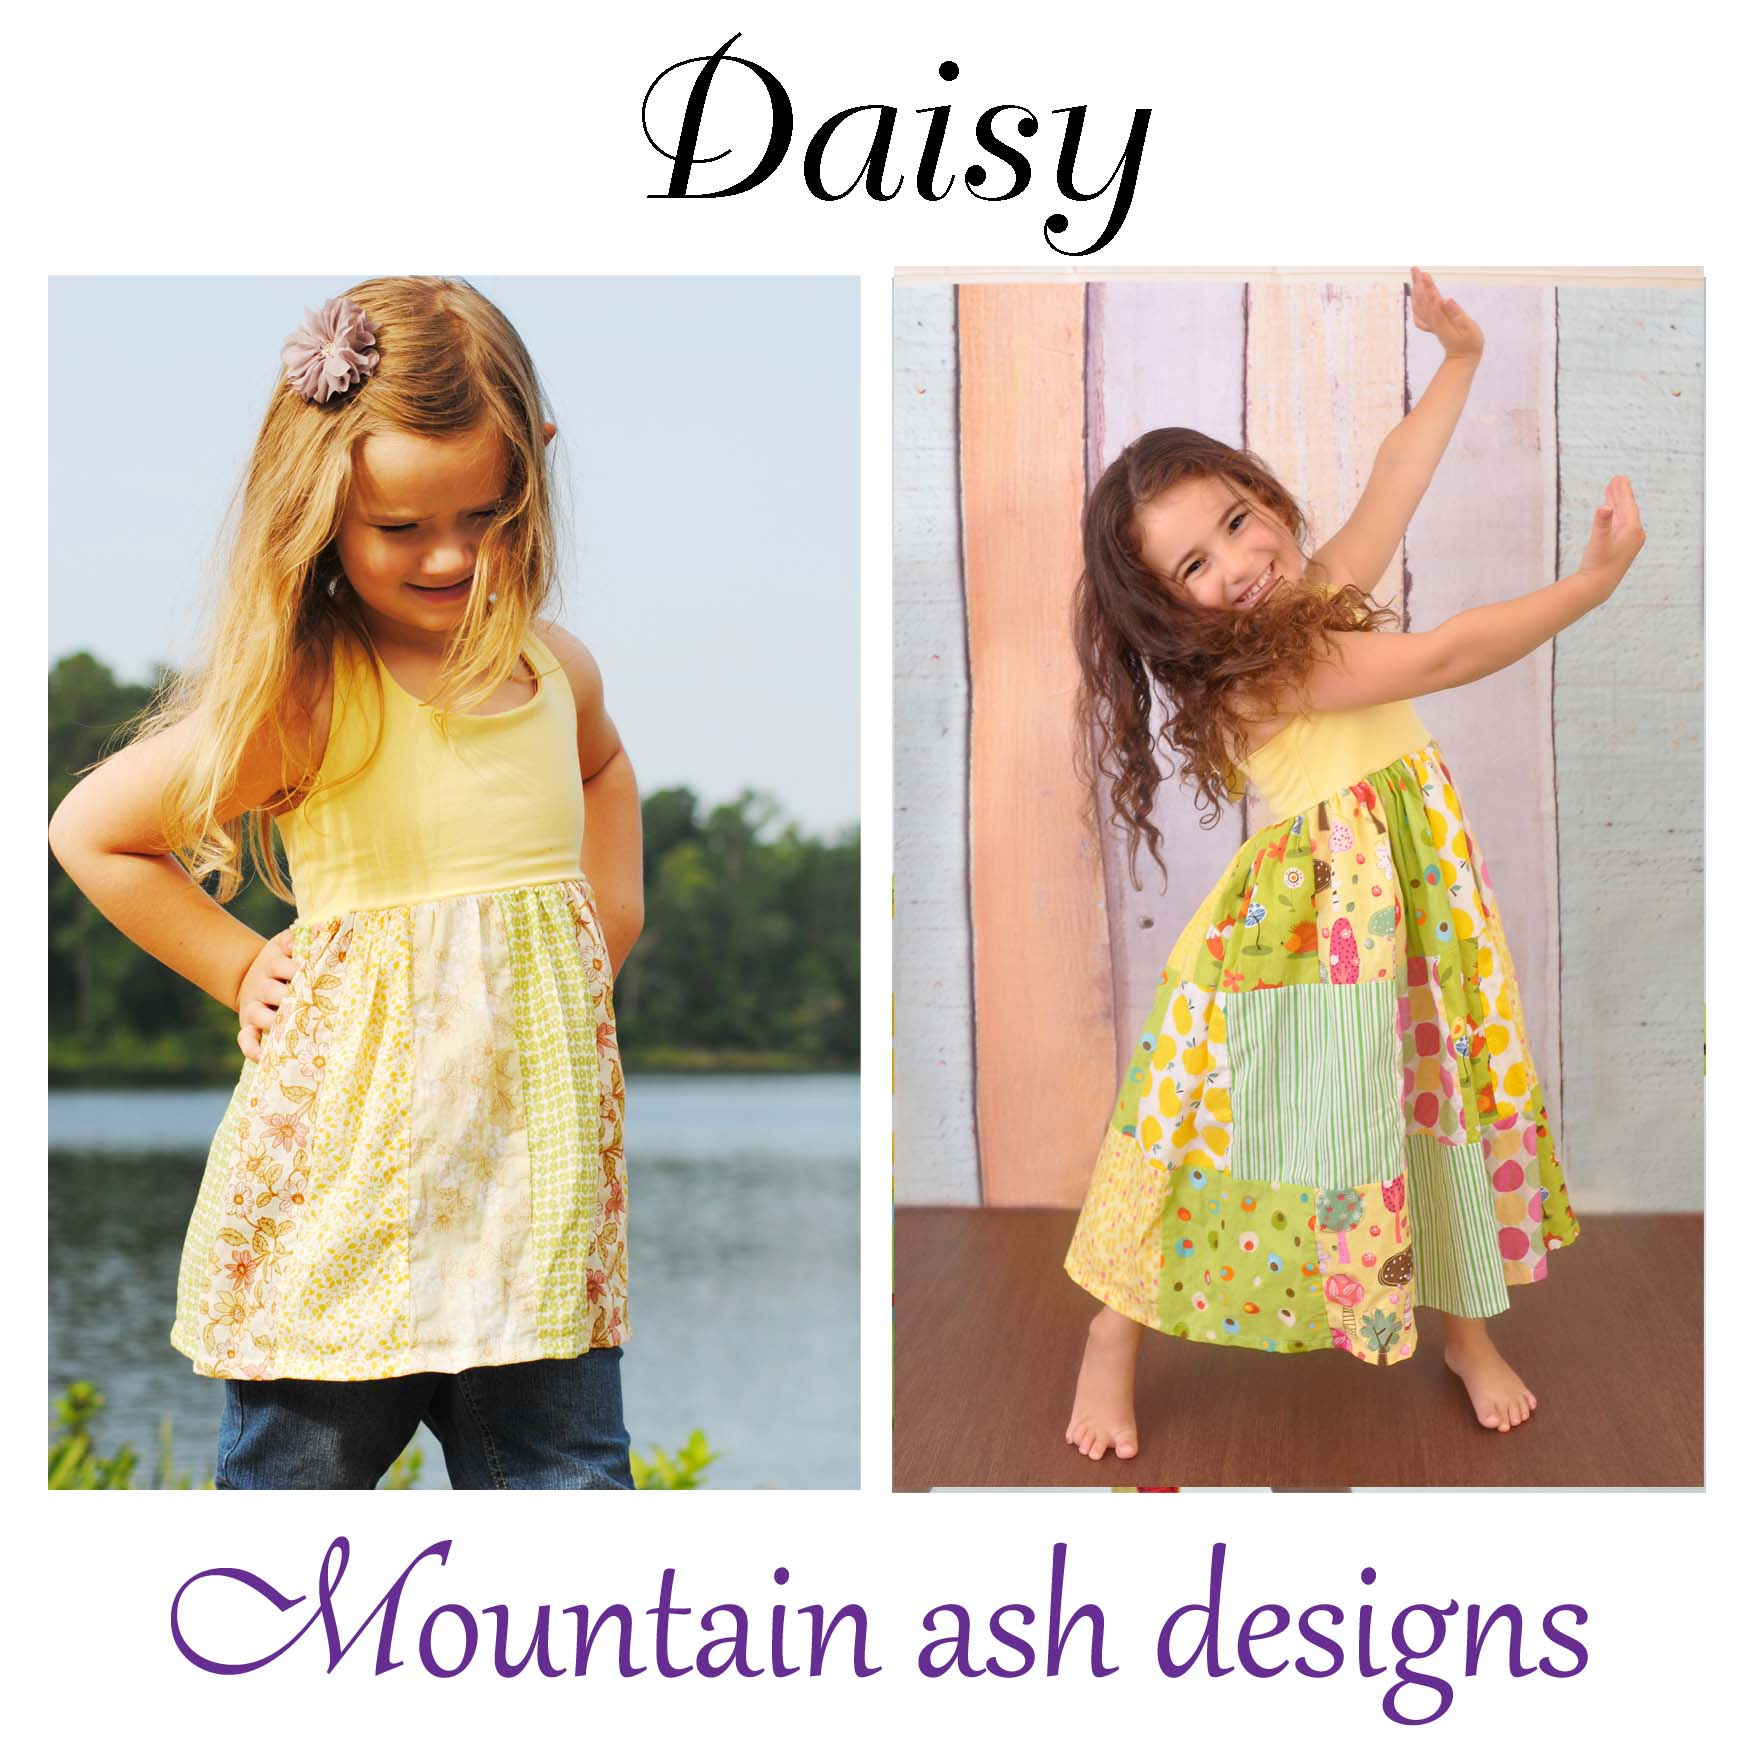 Daisy Halter Neck Patchwork Dress Sewing Pattern in Girls Sizes 1-10